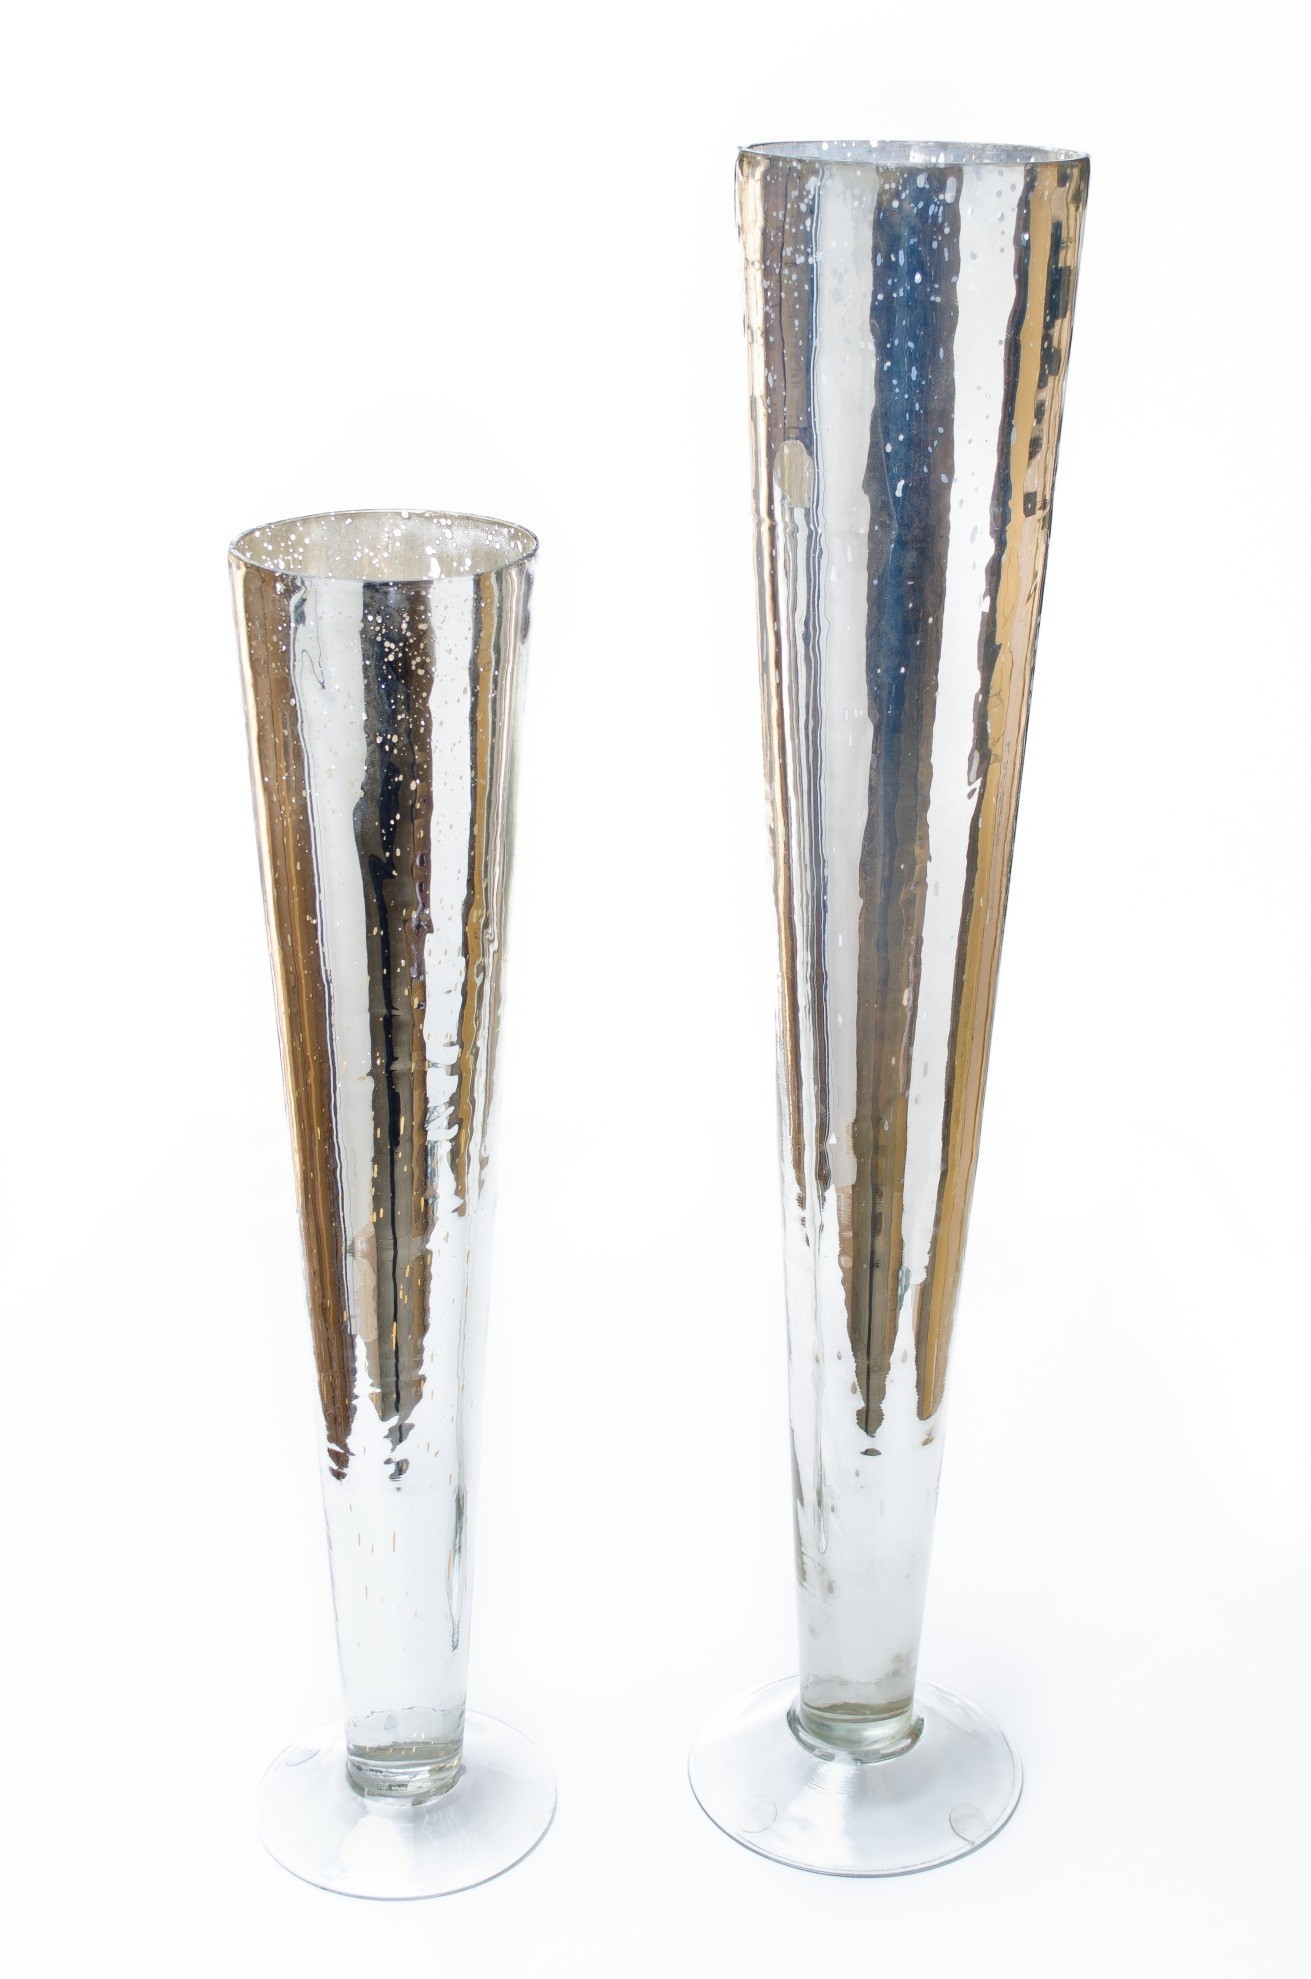 18 Unique Tall Silver Vases wholesale 2021 free download tall silver vases wholesale of silver vases wholesale pandoraocharms us intended for silver vases wholesale gold mercury glass vase large